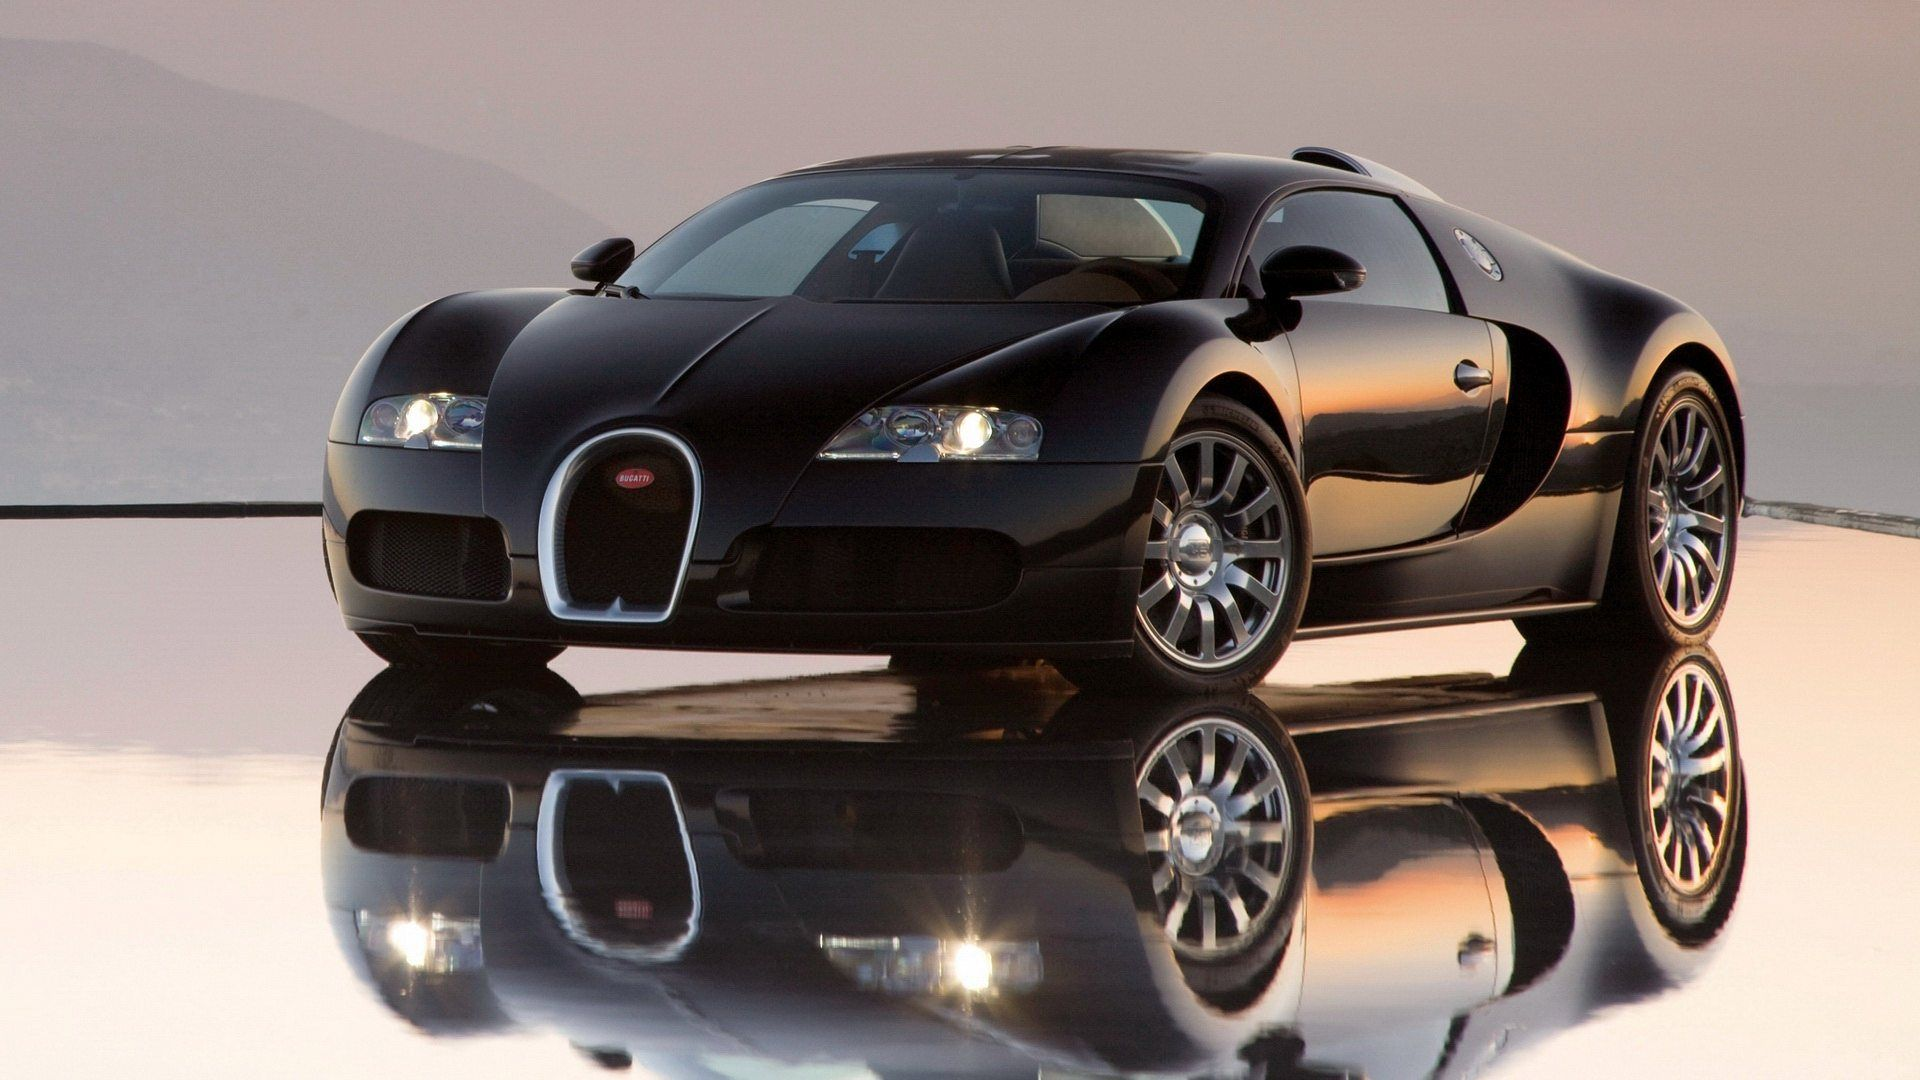 Bugatti Bugatti Veyron Wallpaper 5526 Hd Wallpapers In Cars